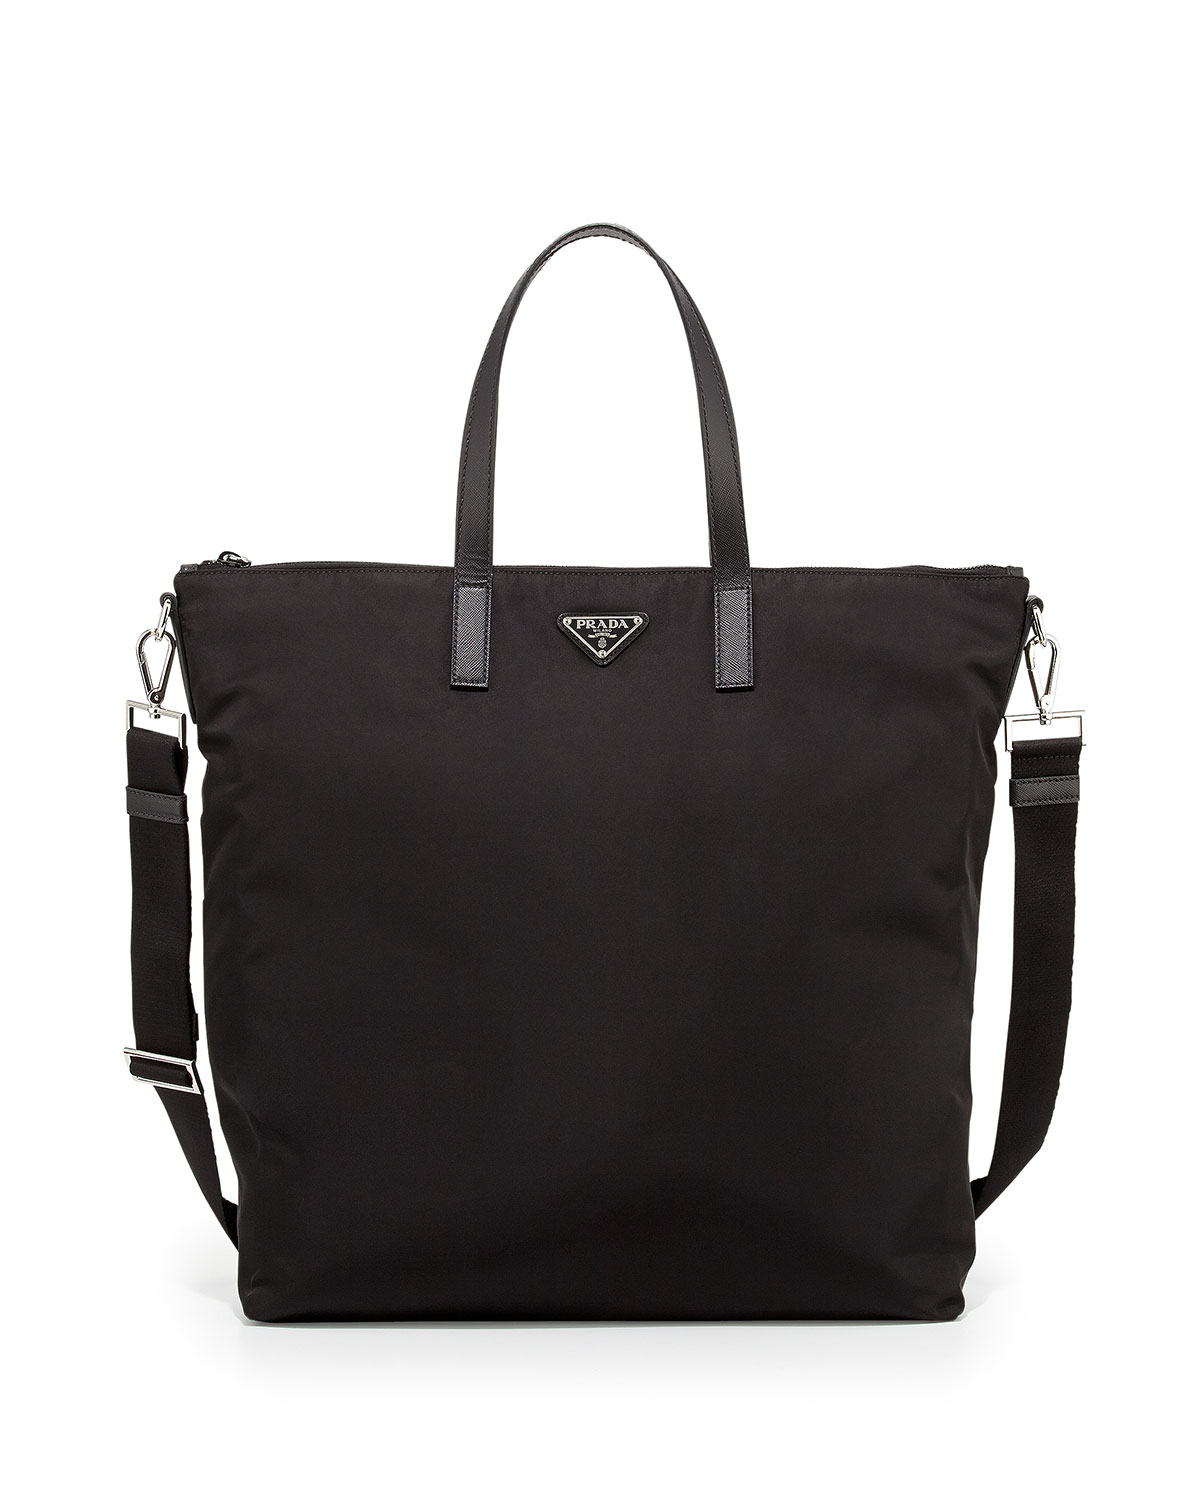 Prada Men's Nylon Zip Tote Bag With Strap in Black | Lyst